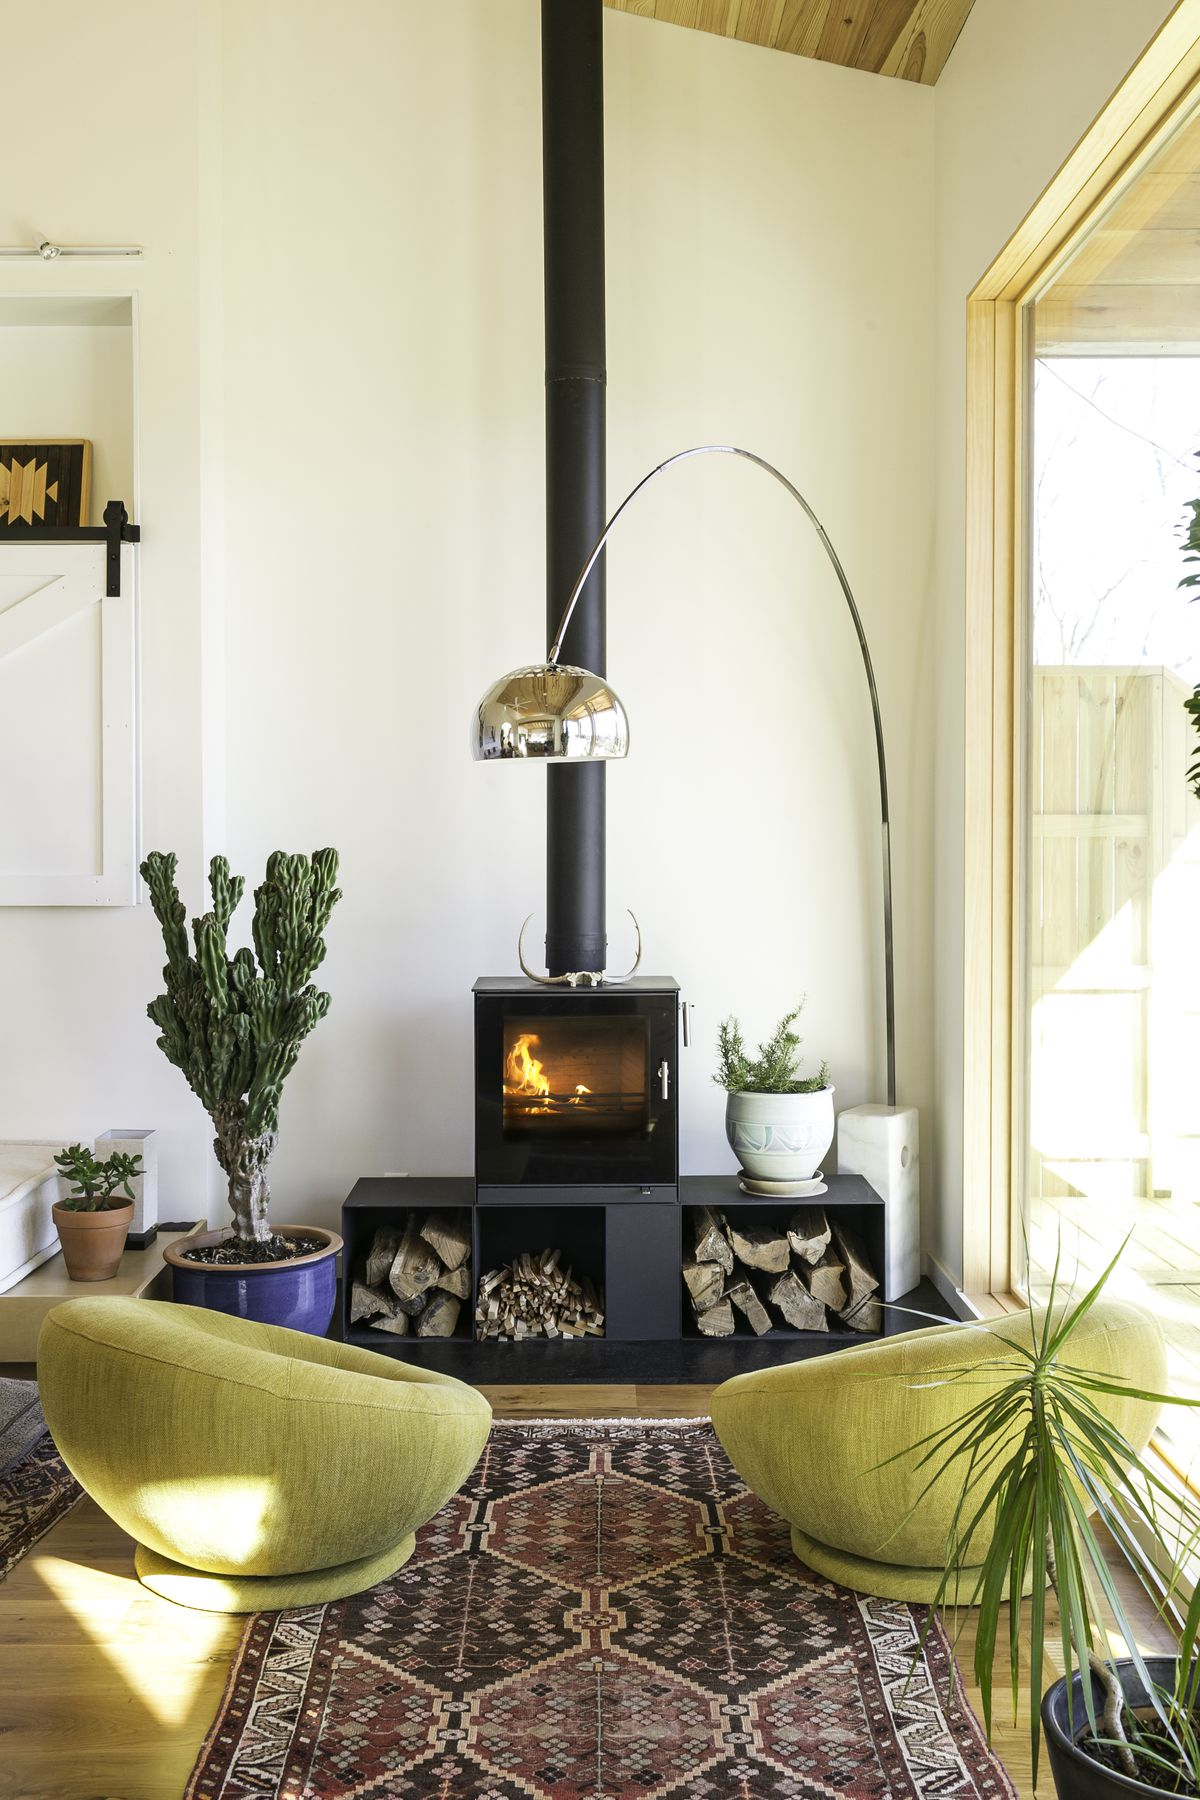 Black fireplace, chartreuse chairs facing the fireplace, many plants and rug.